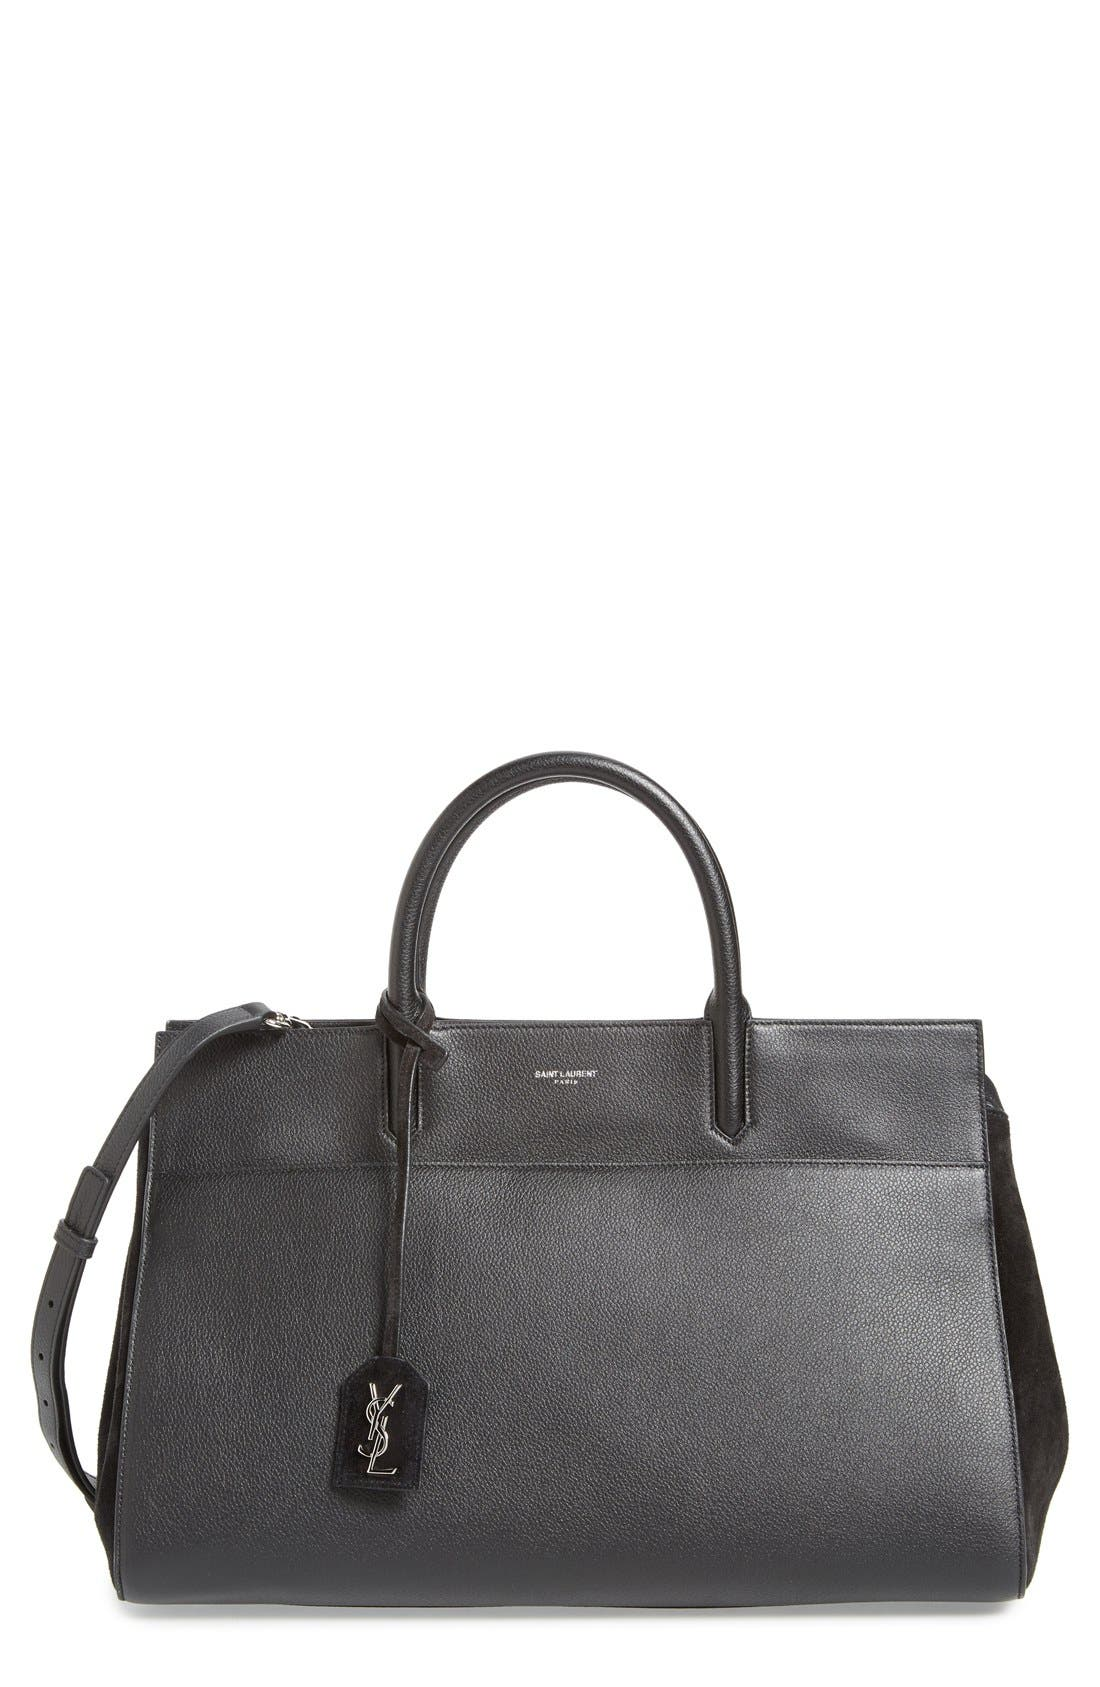 Saint Laurent 'Medium Rive Gauche' Grained Leather Satchel